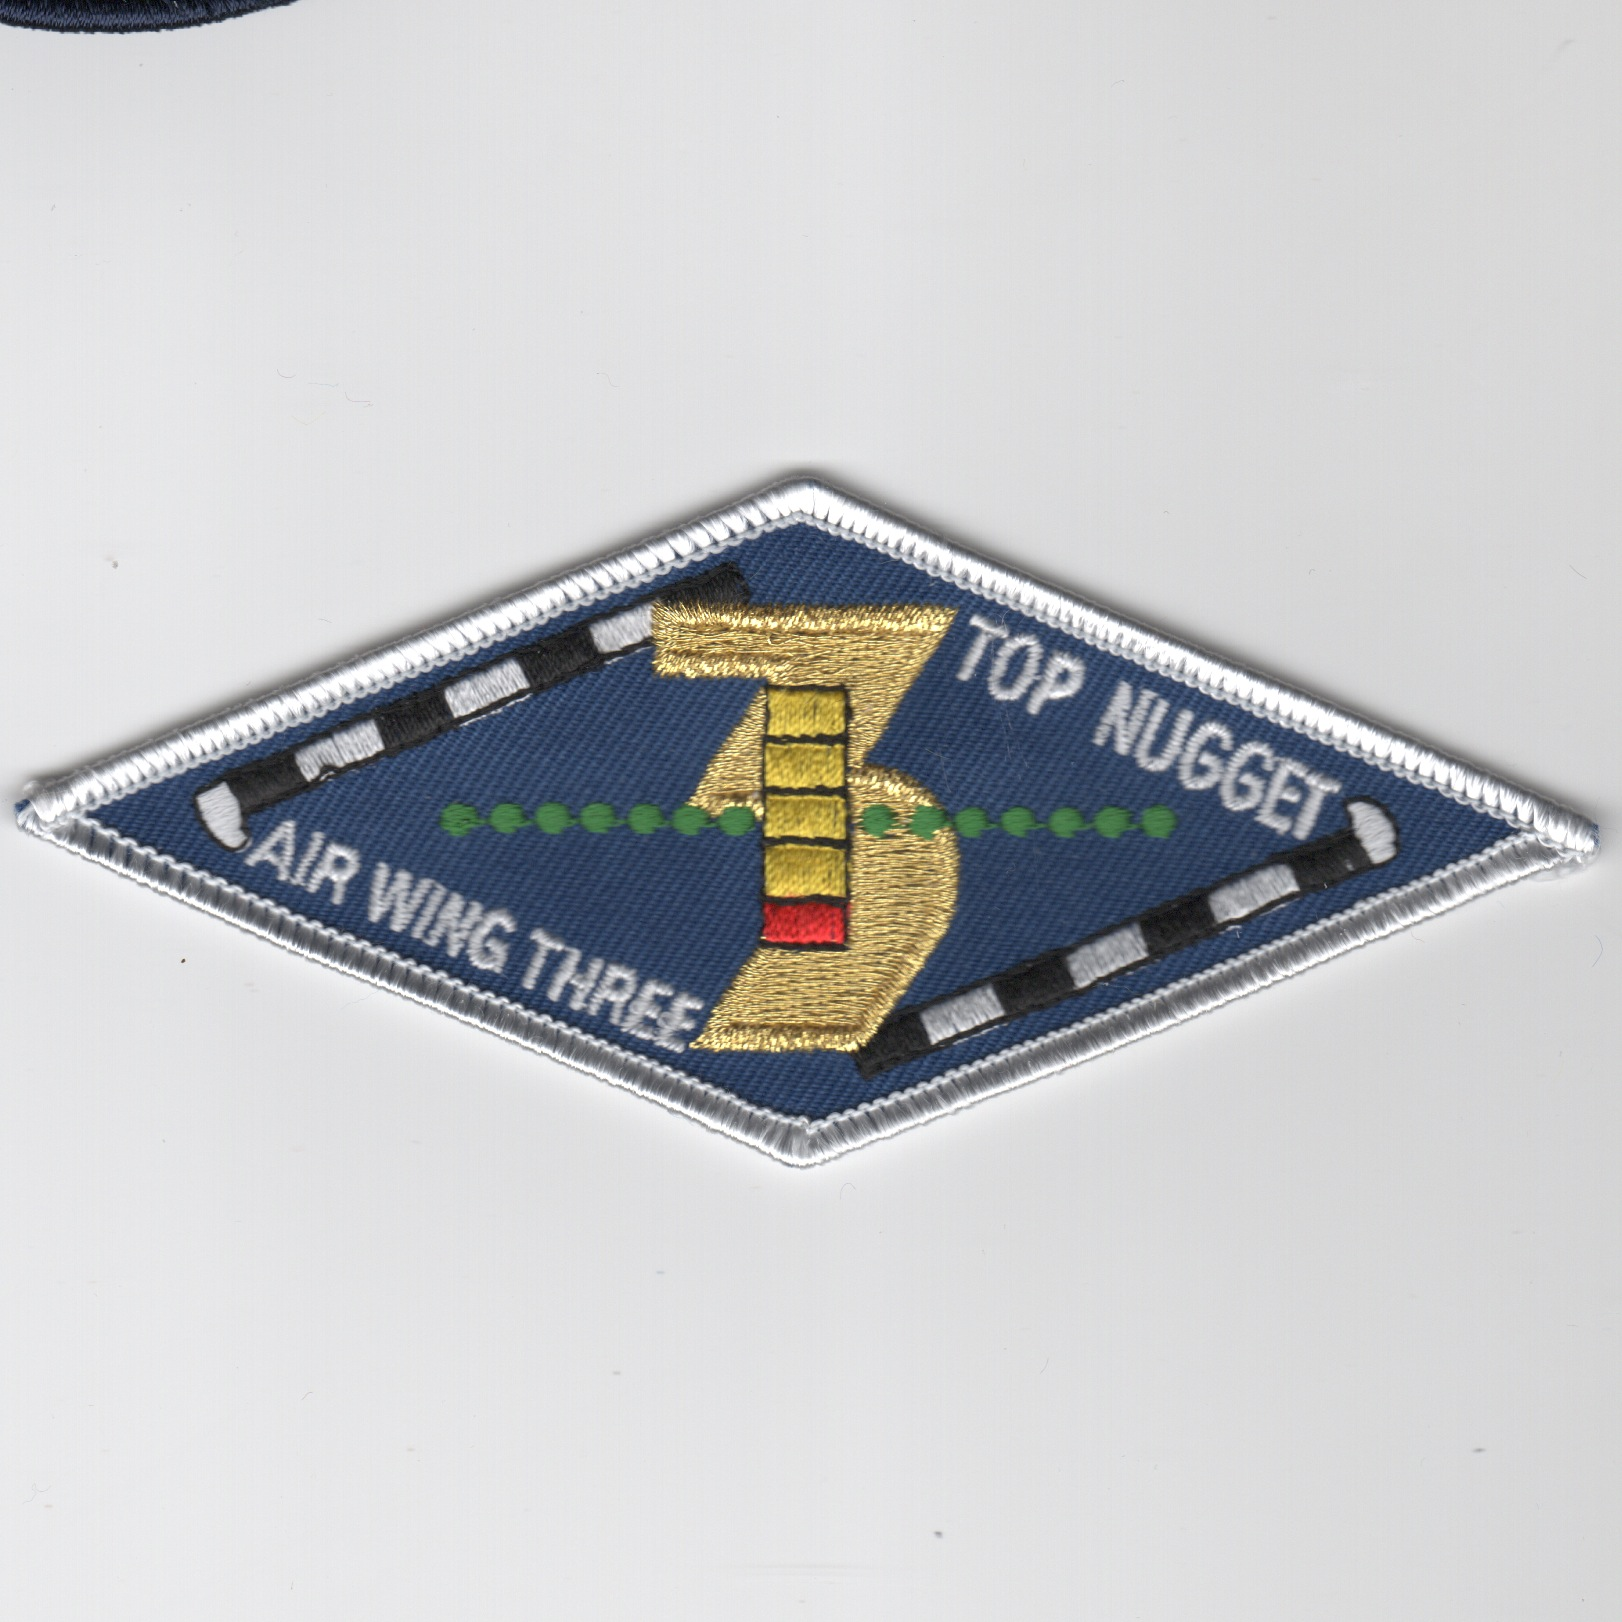 CVW-3 'Top NUGGET' Patch